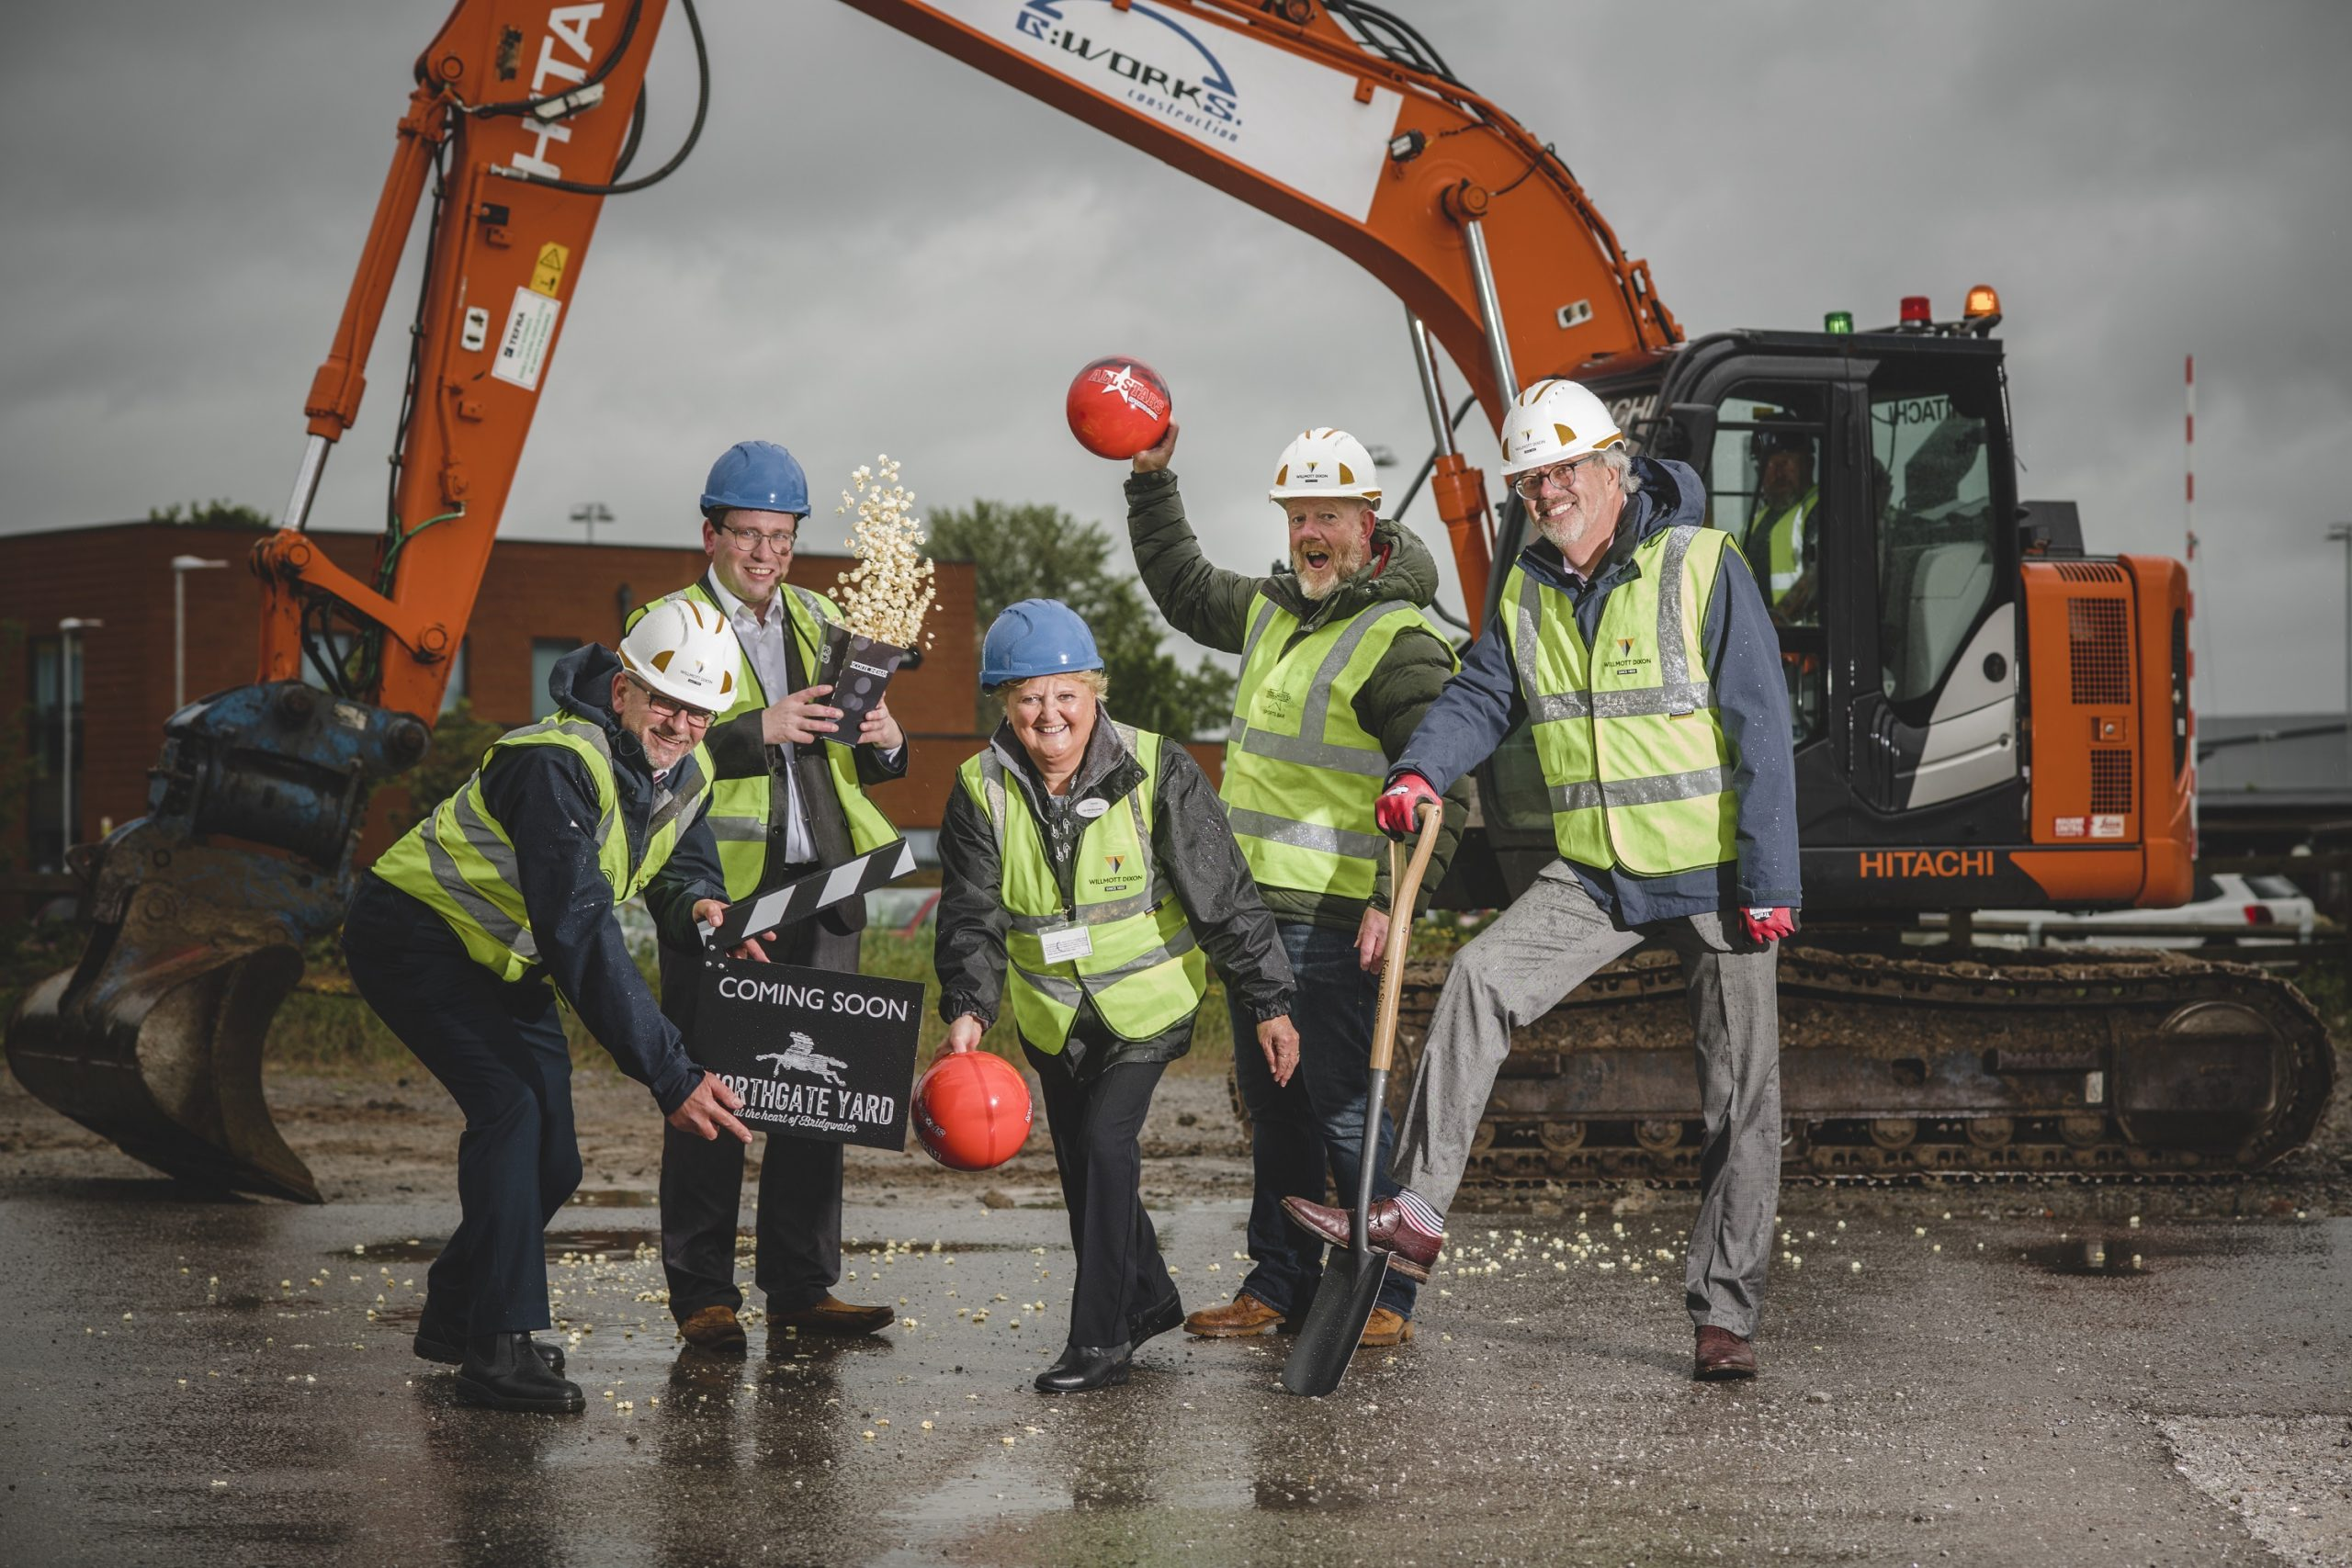 WORK BEGINS ON £16M ENTERTAINMENT AND DINING DEVELOPMENT IN THE HEART OF BRIDGWATER